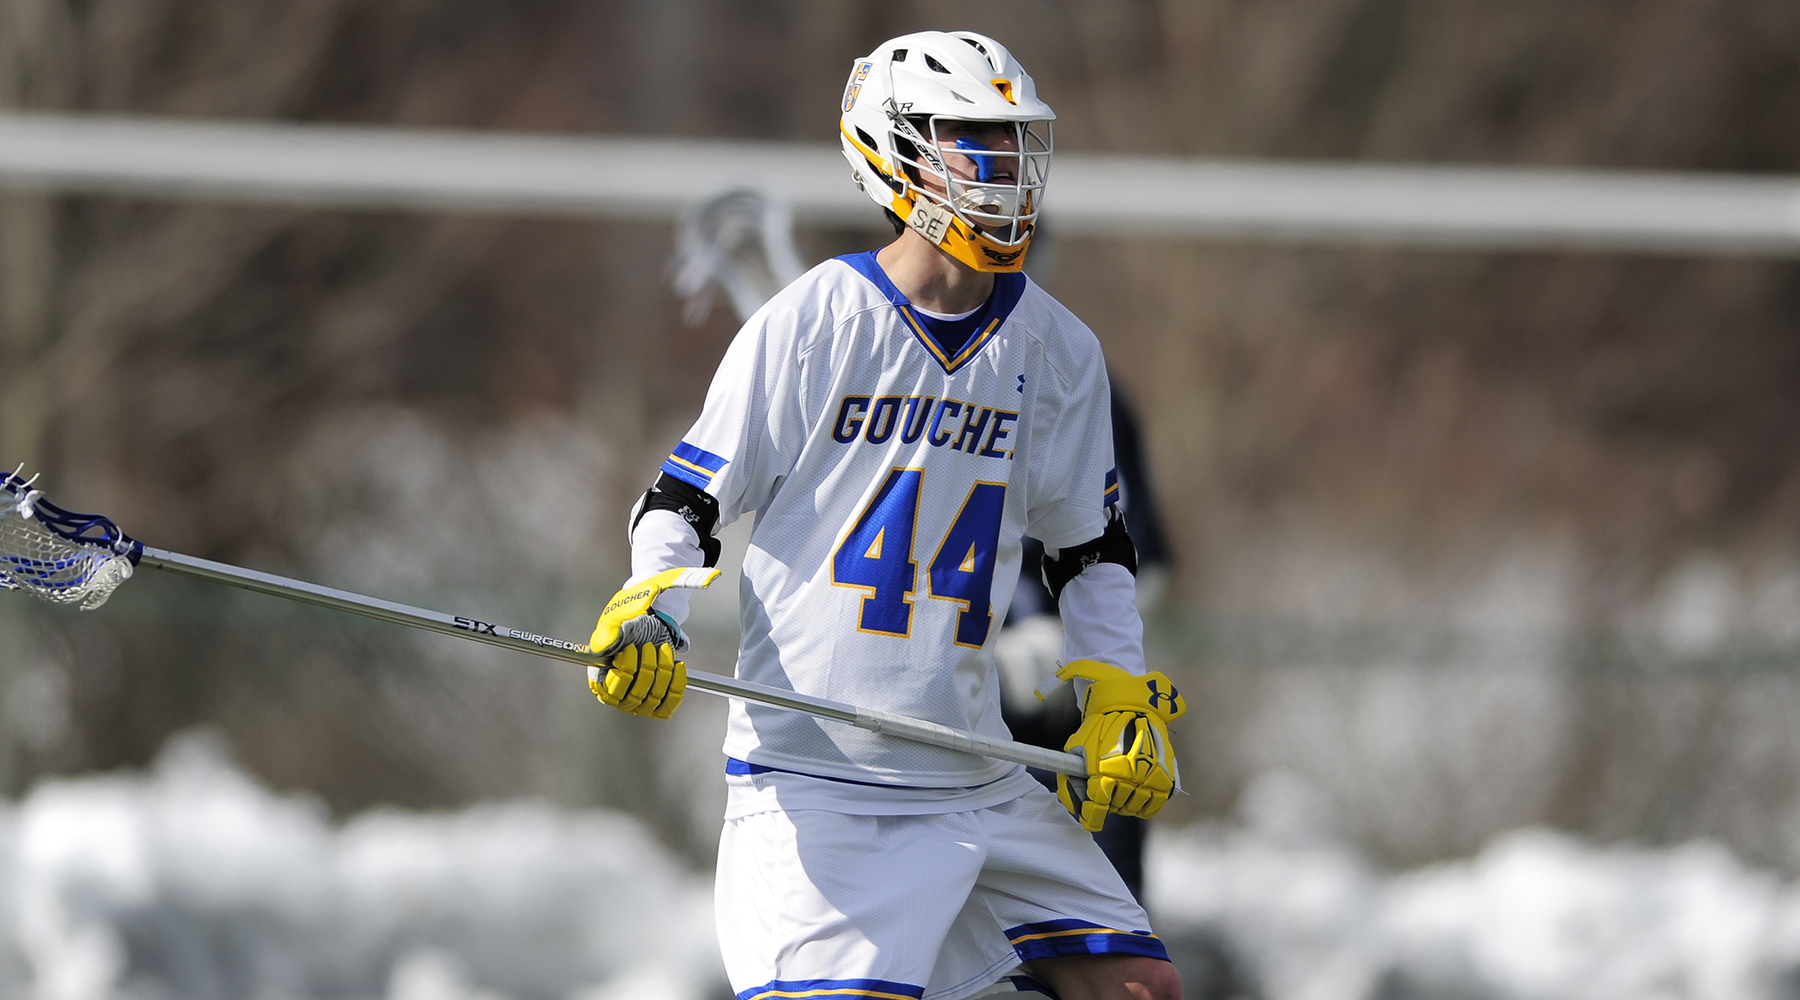 Harnish Pours in Five Goals, as Men's Lacrosse Buries Wesley, 14-6